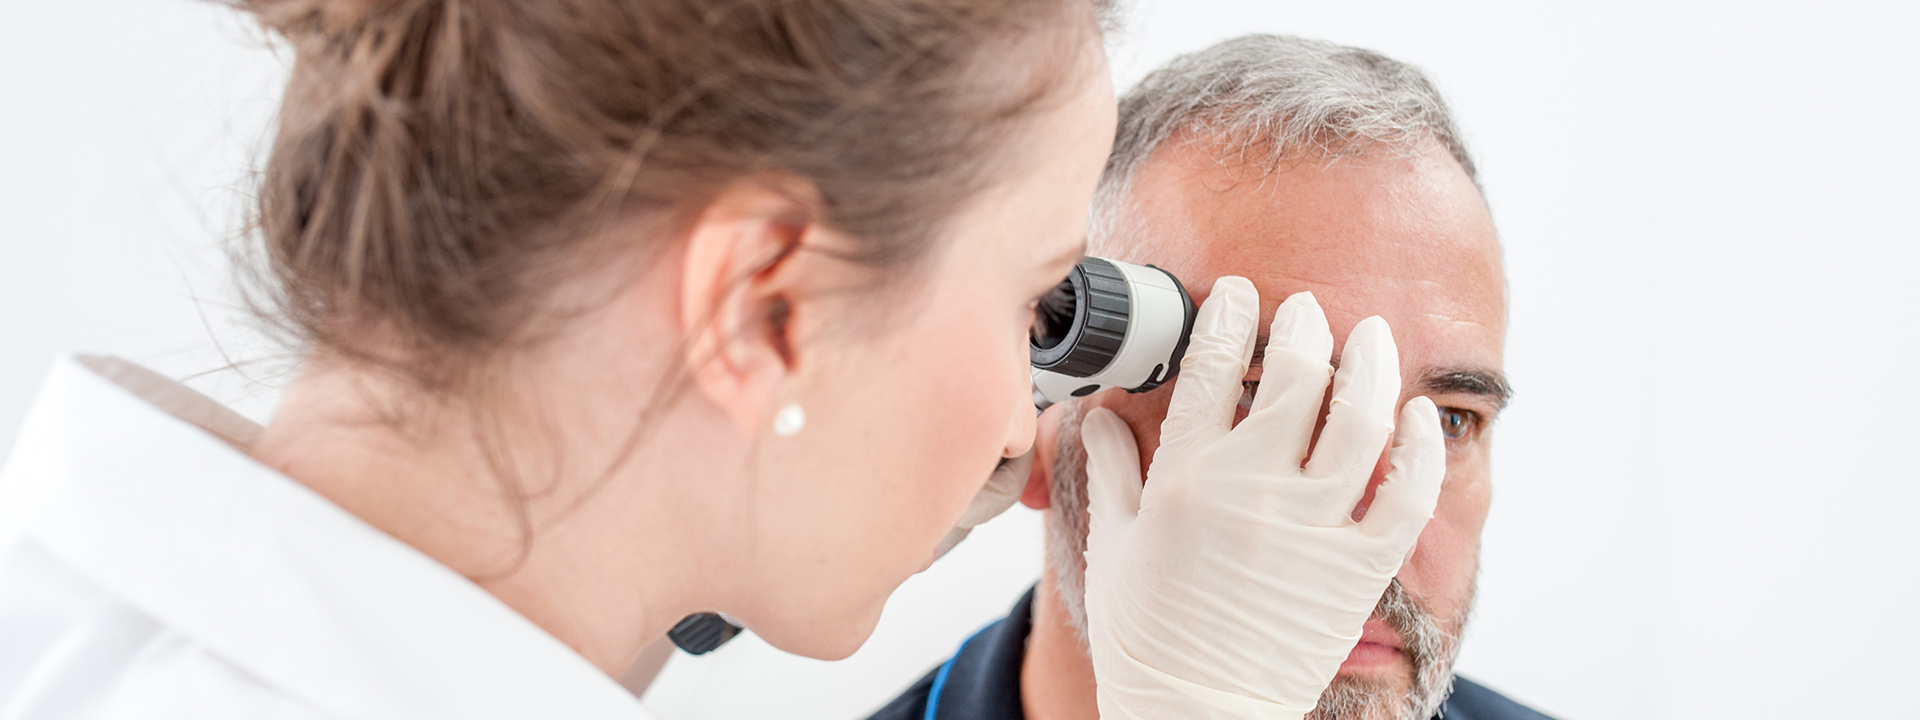 doctor checking patient's skin with magnifier